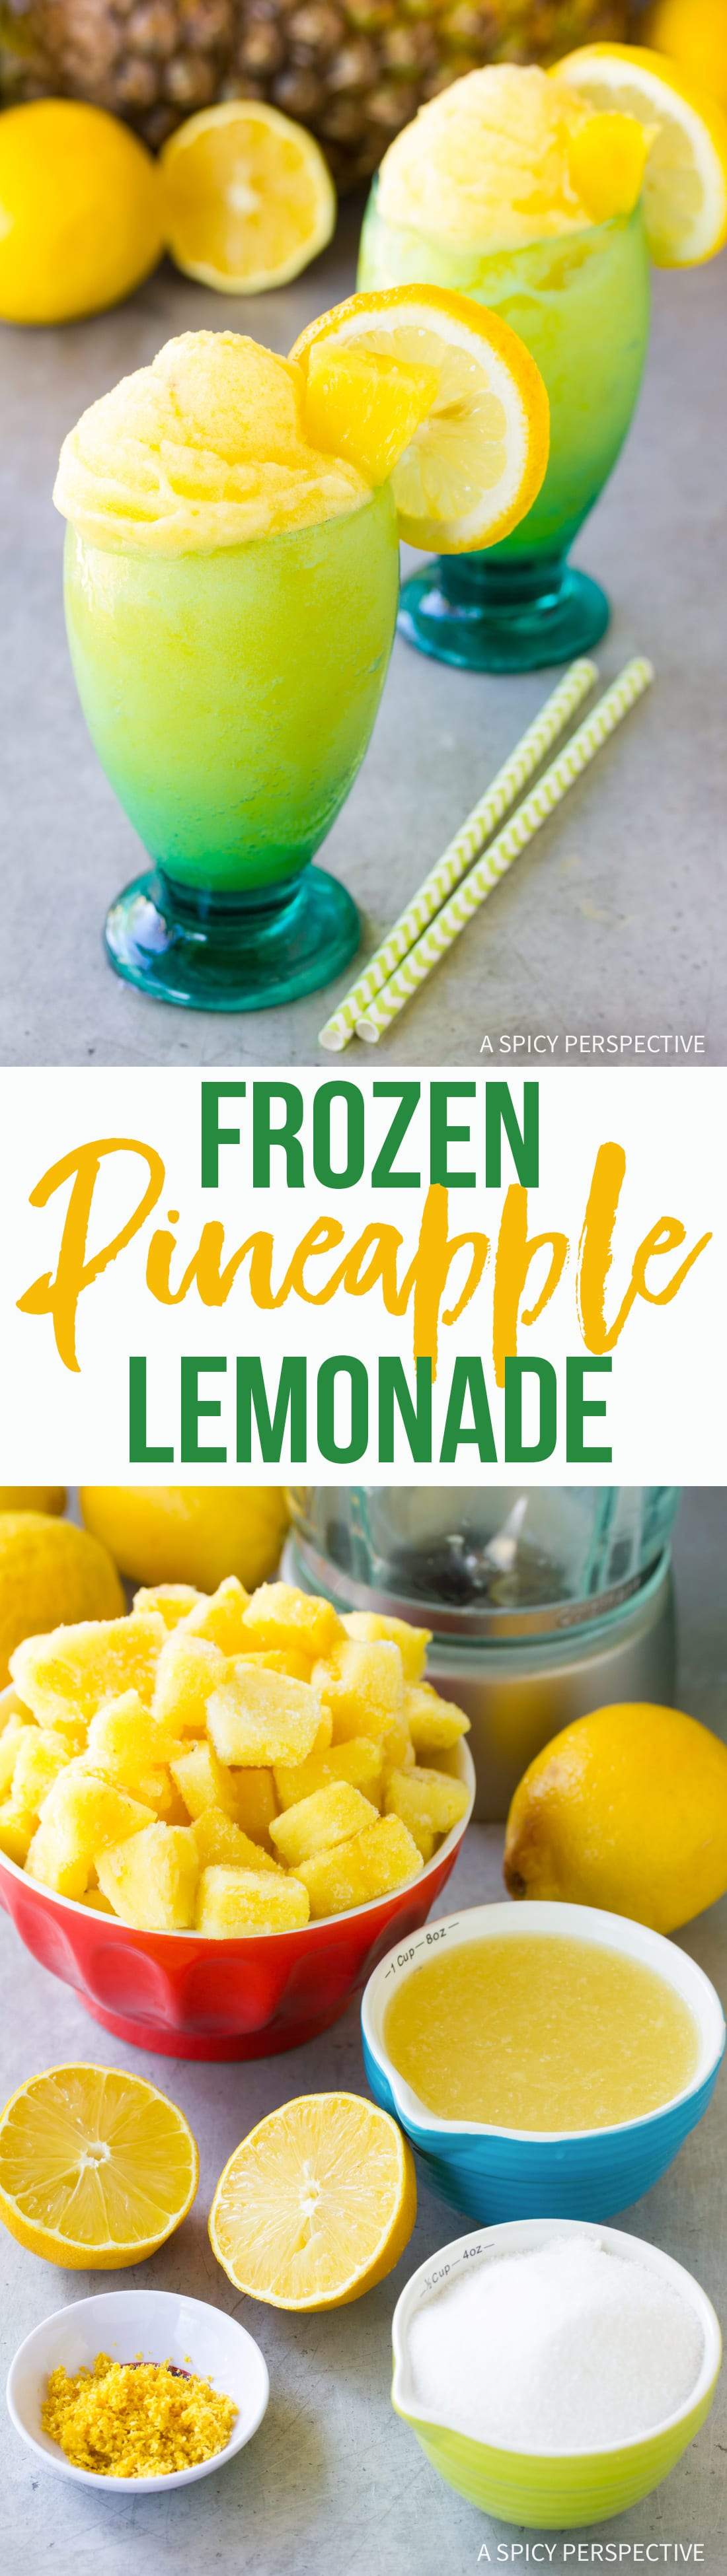 Frosty Frozen Pineapple Lemonade Recipe